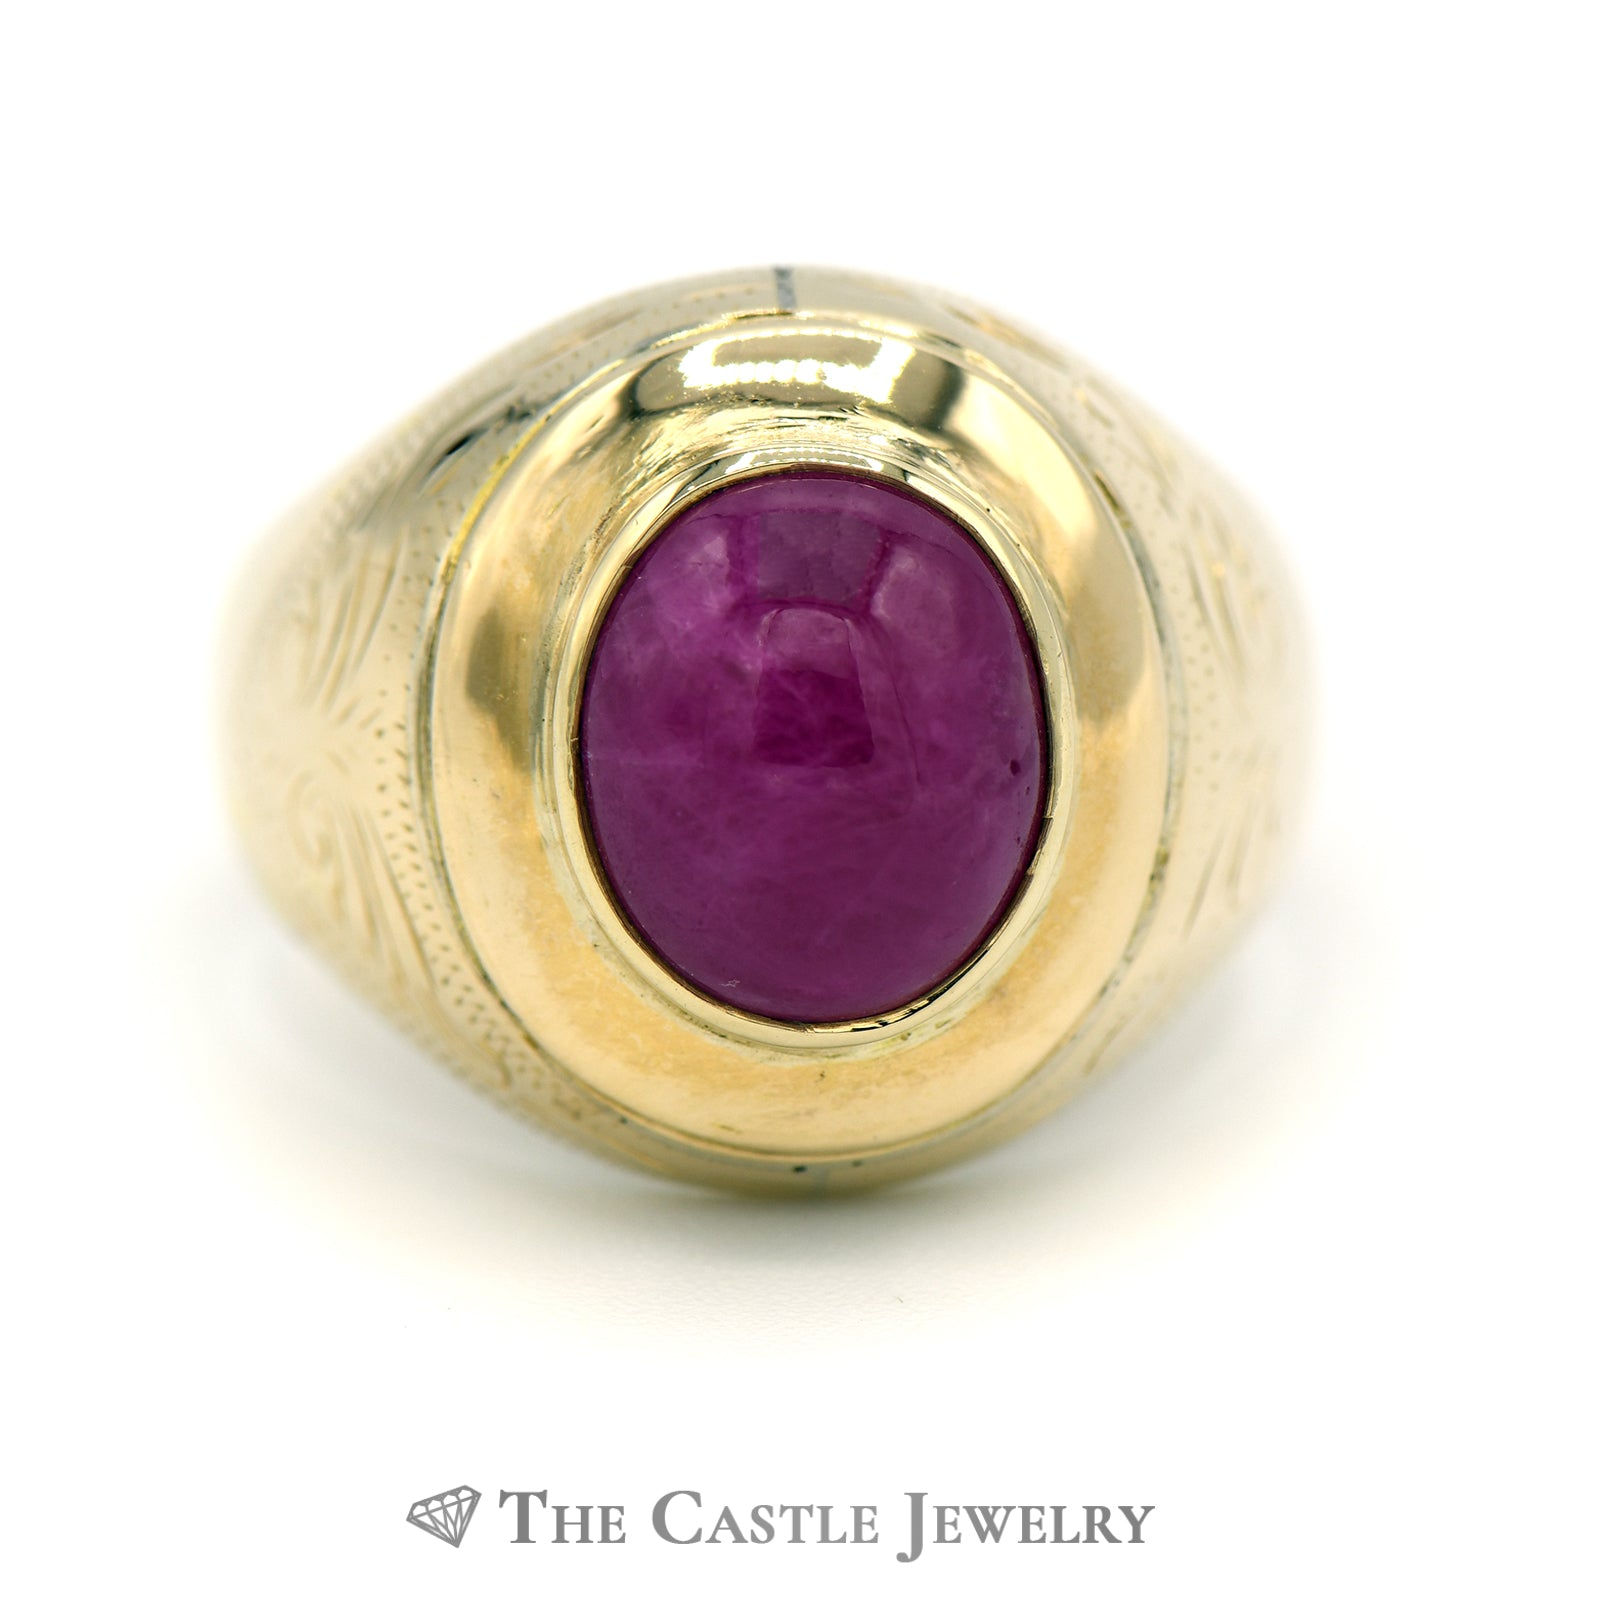 Bezel Set Oval Cabochon Ruby Ring in Etched 18k Yellow Gold Mounting